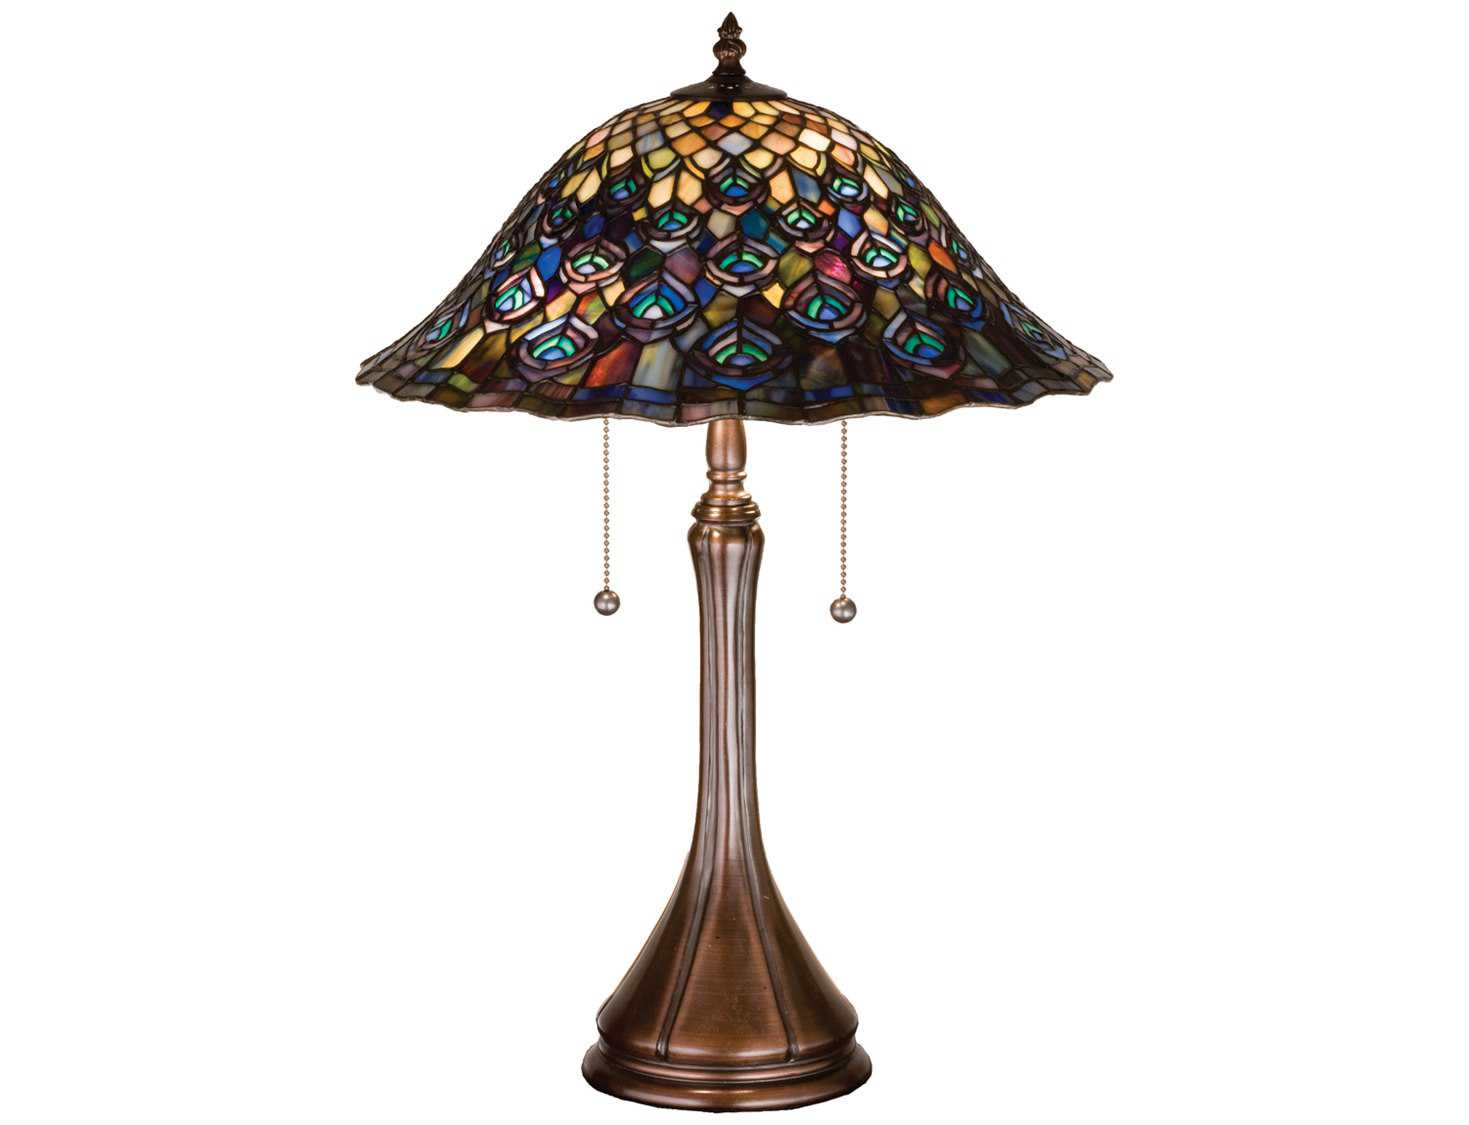 Meyda Tiffany Peacock Feather Multi Color Table Lamp 14574